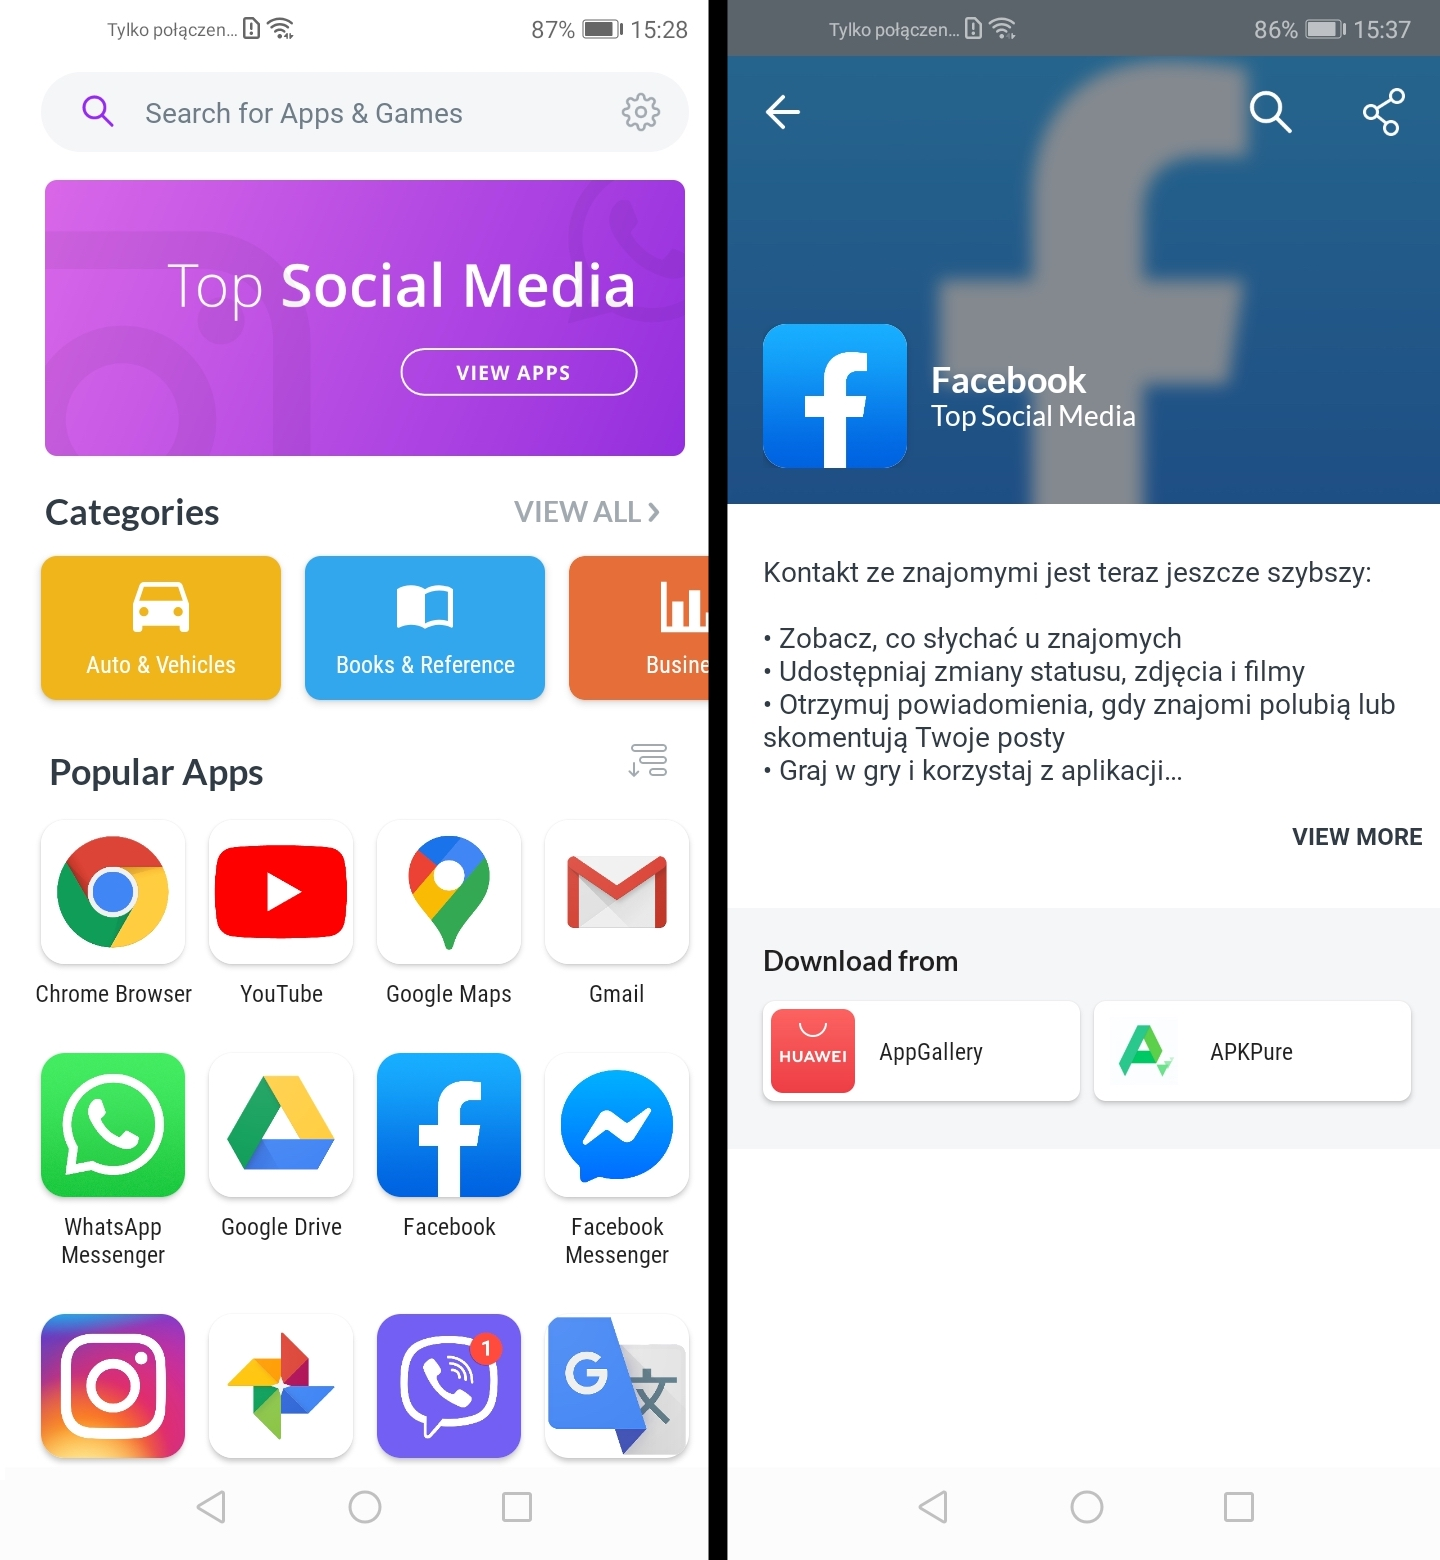 huawei appgallery moreapps 8